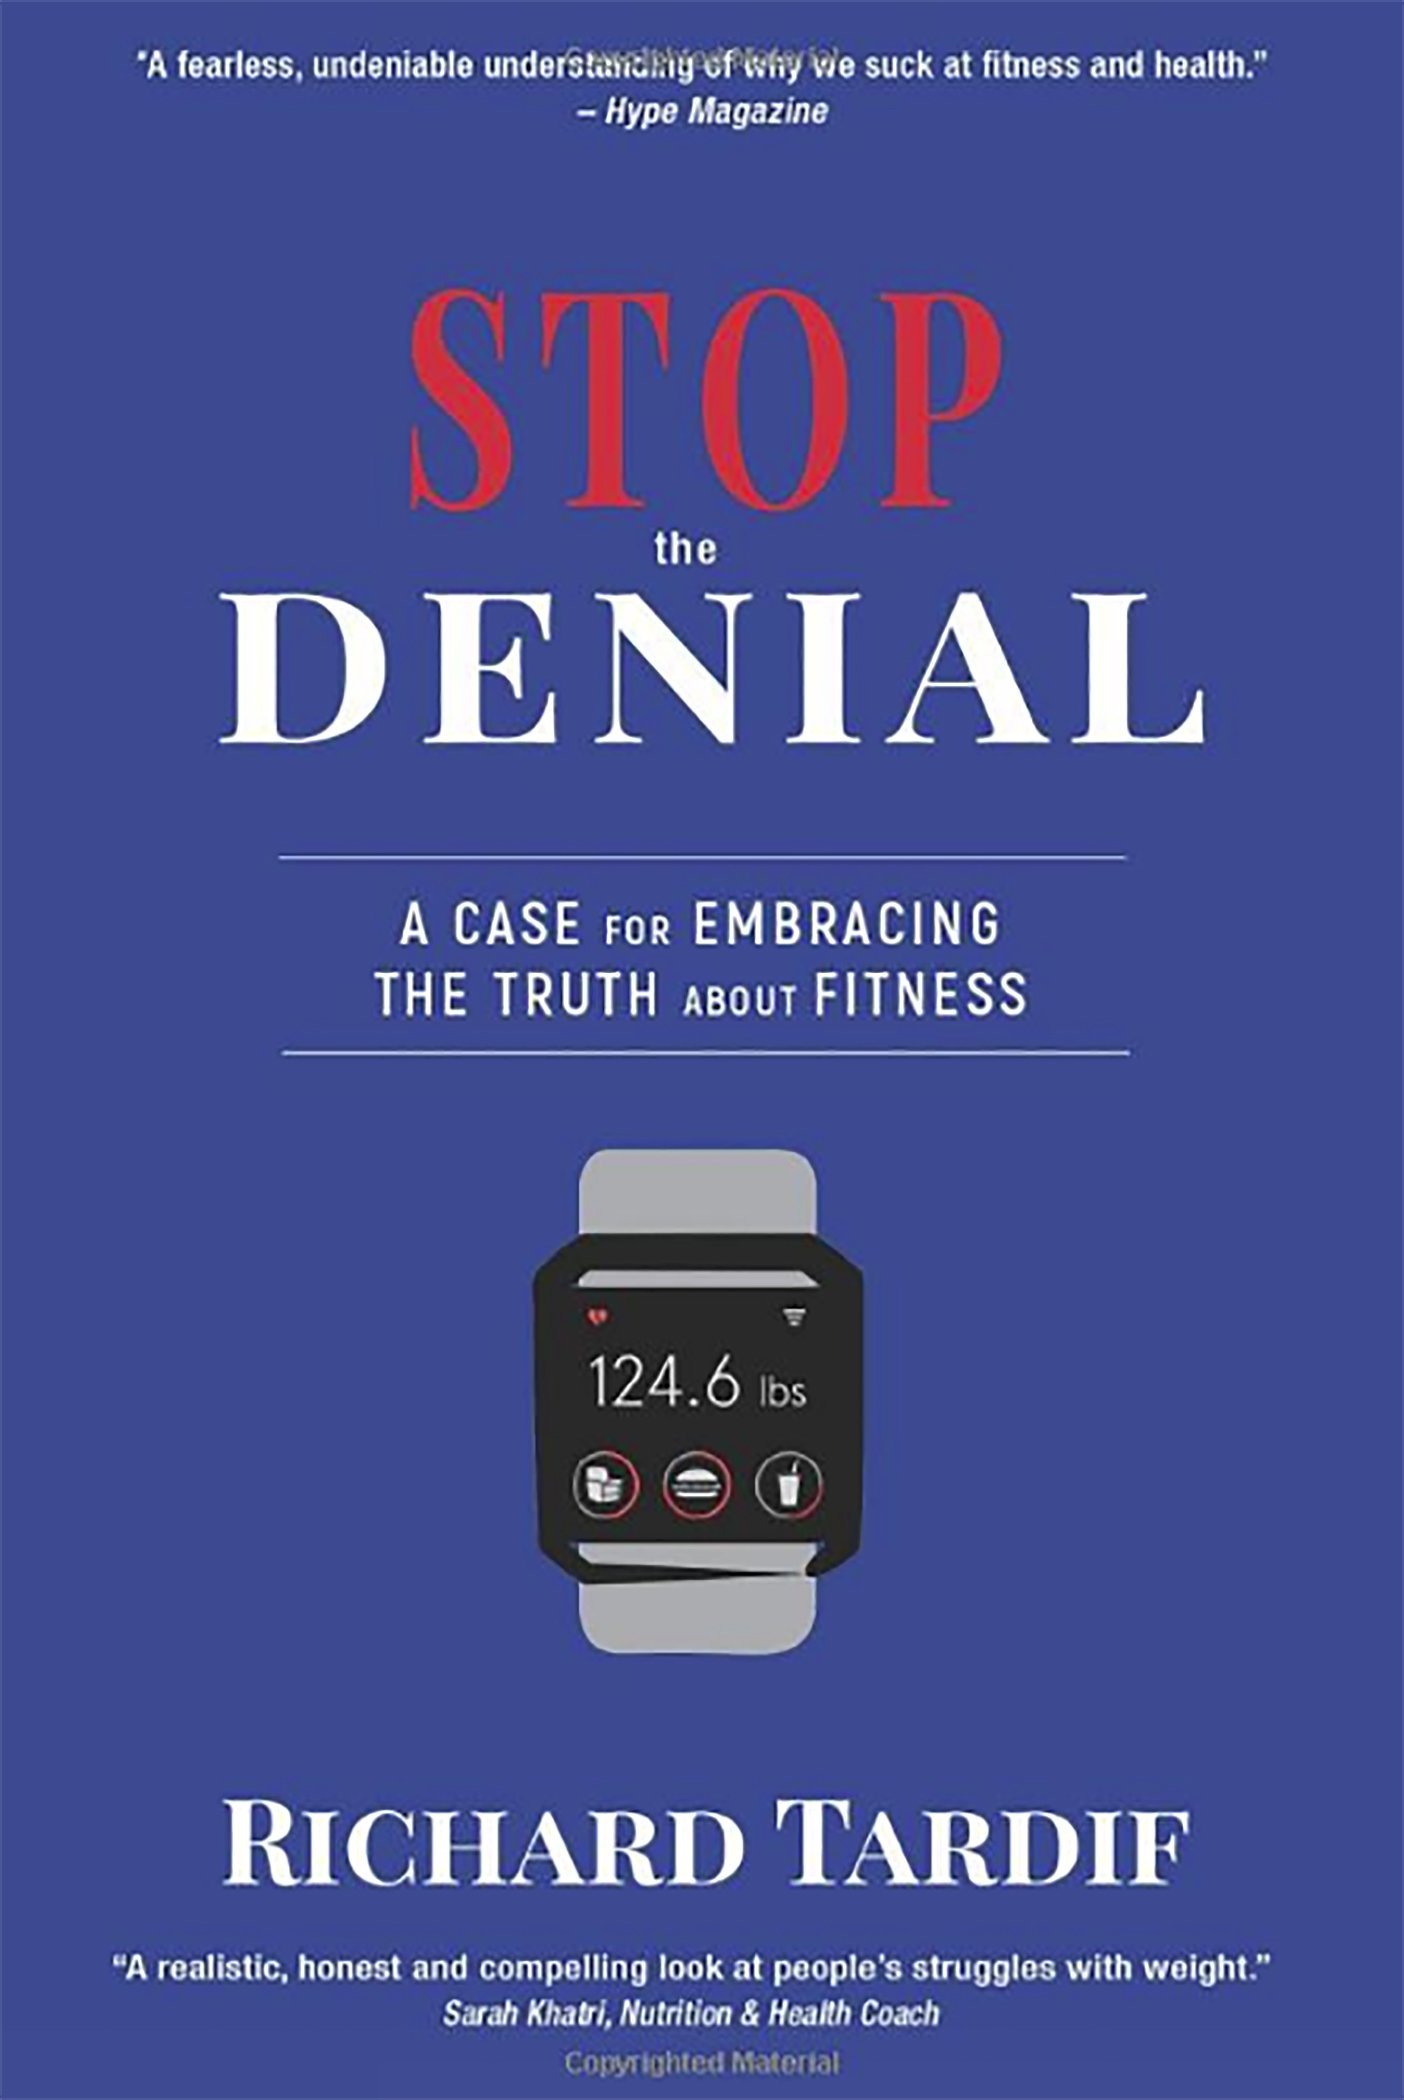 Stop the Denial by Richard Tardif